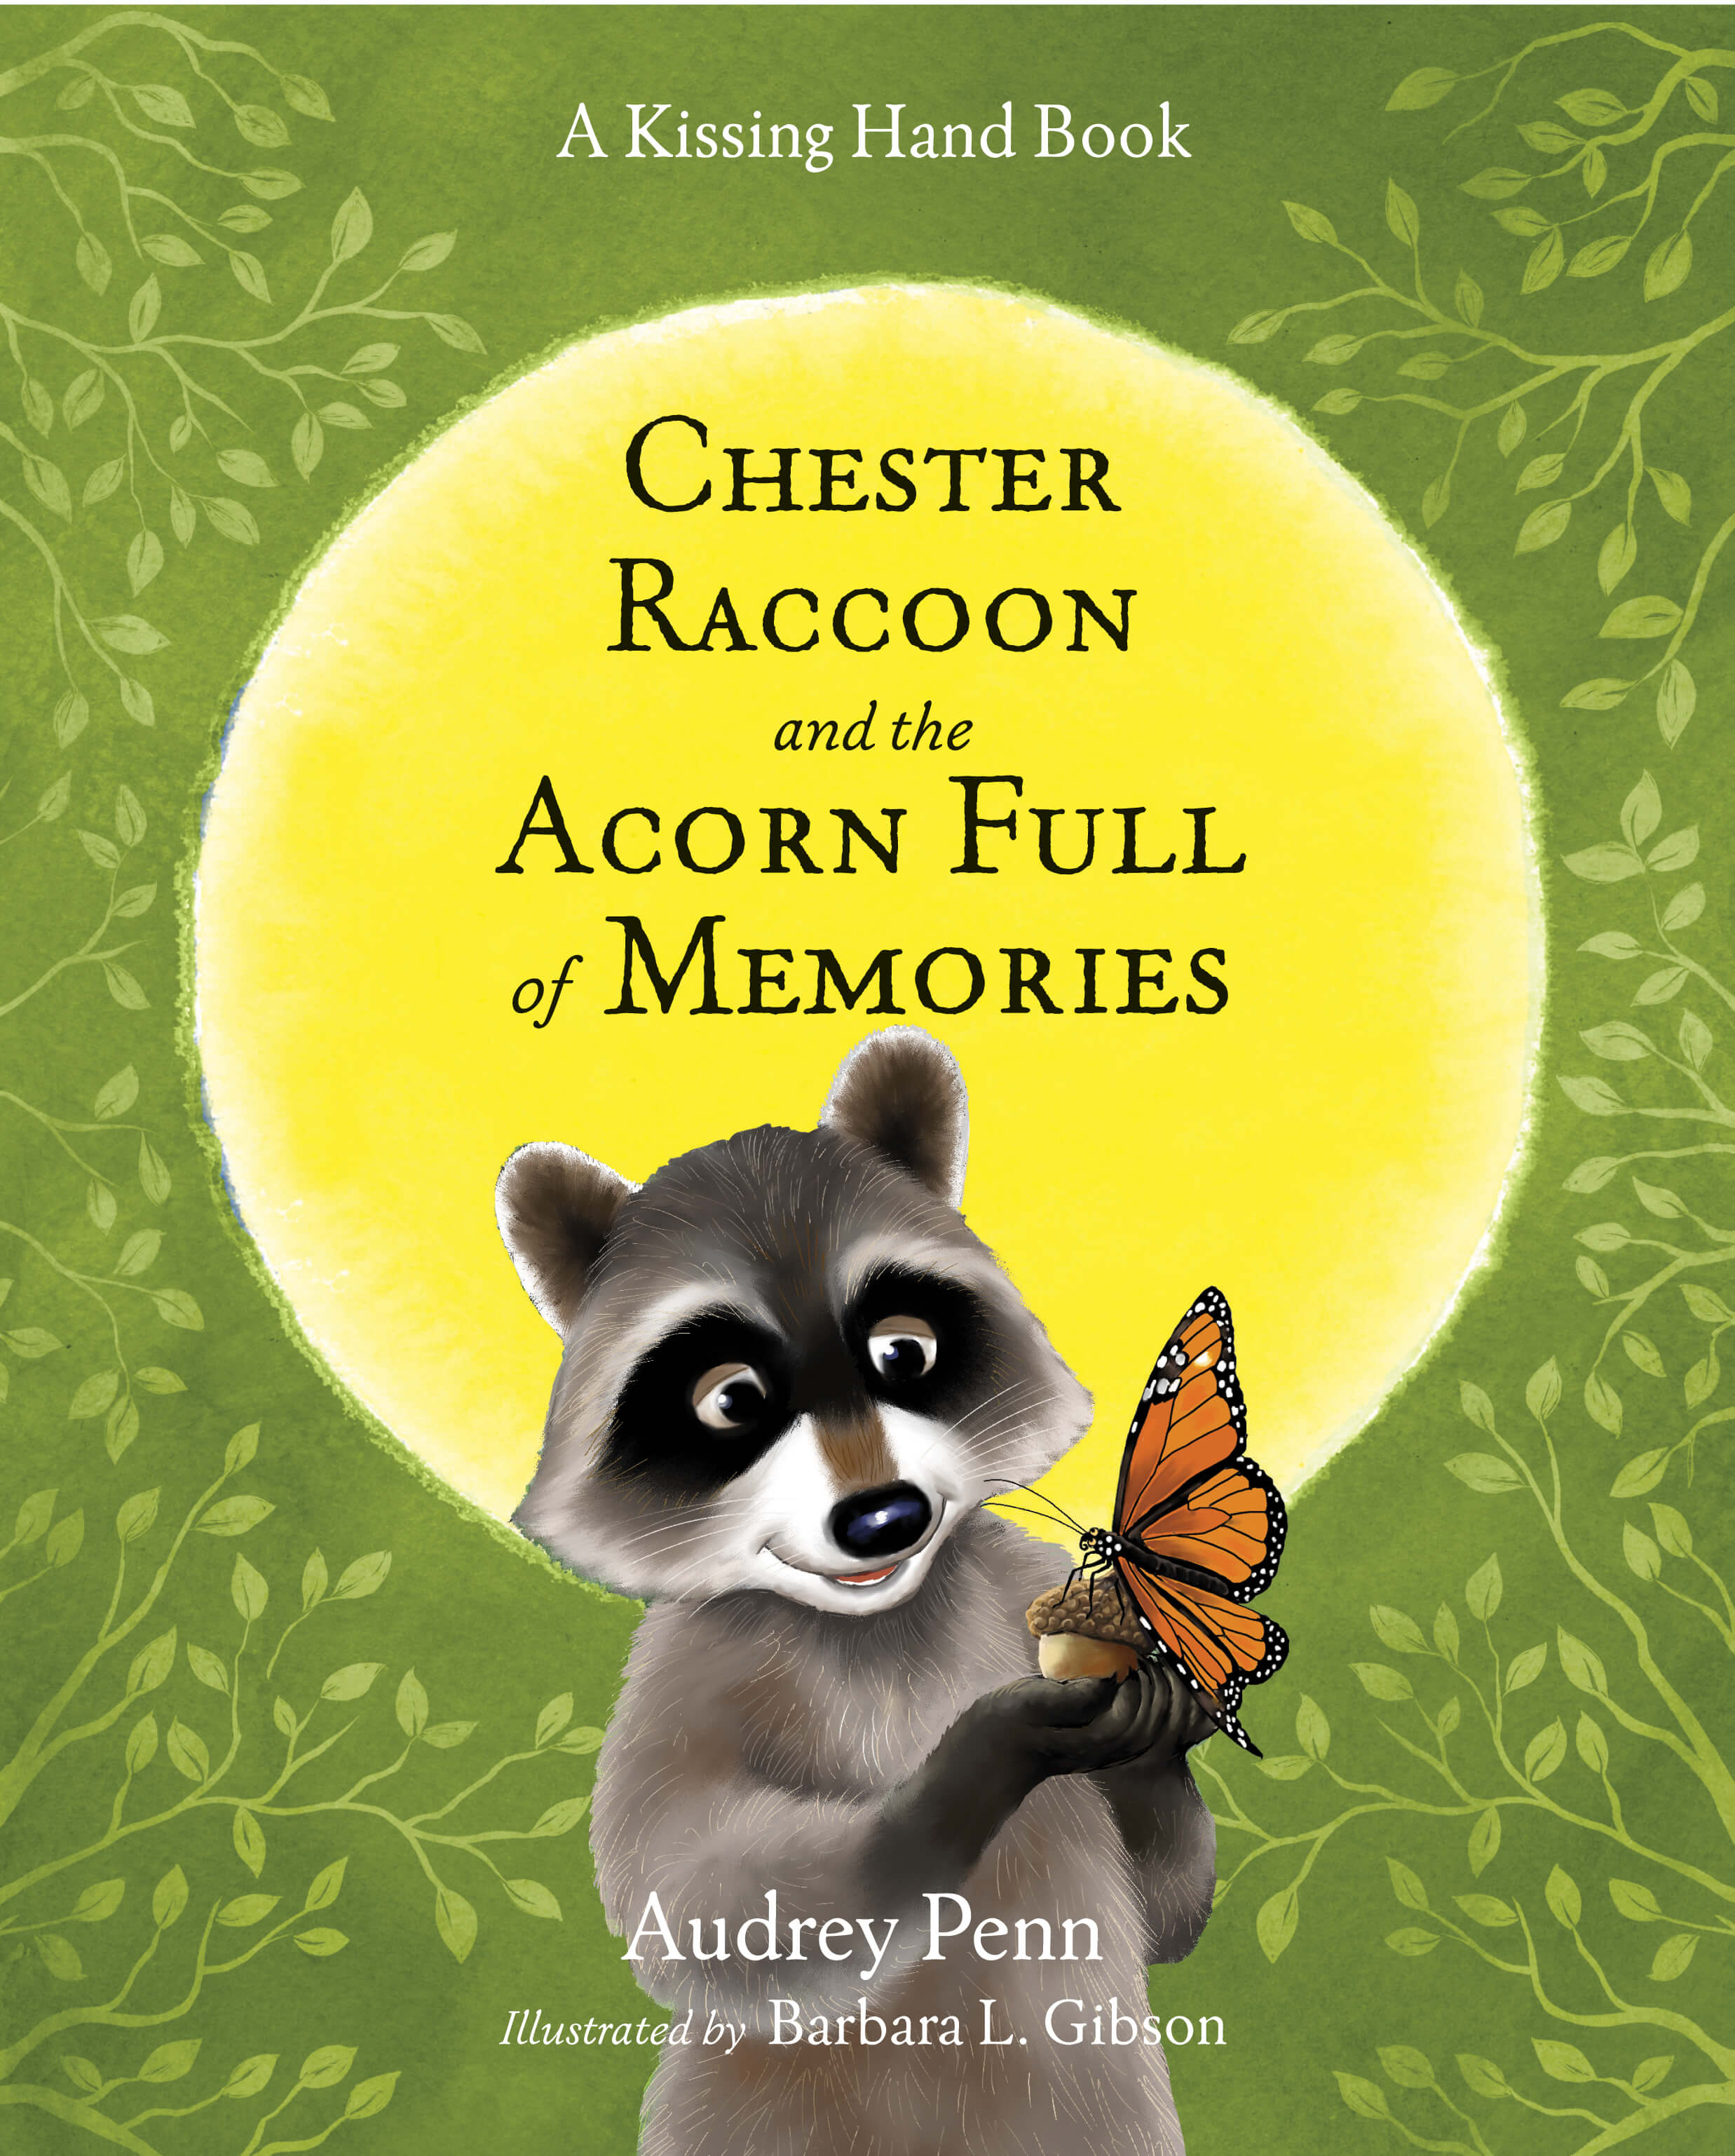 Chester Raccoon and the Acorn Full of Memories 2016 Book Cover